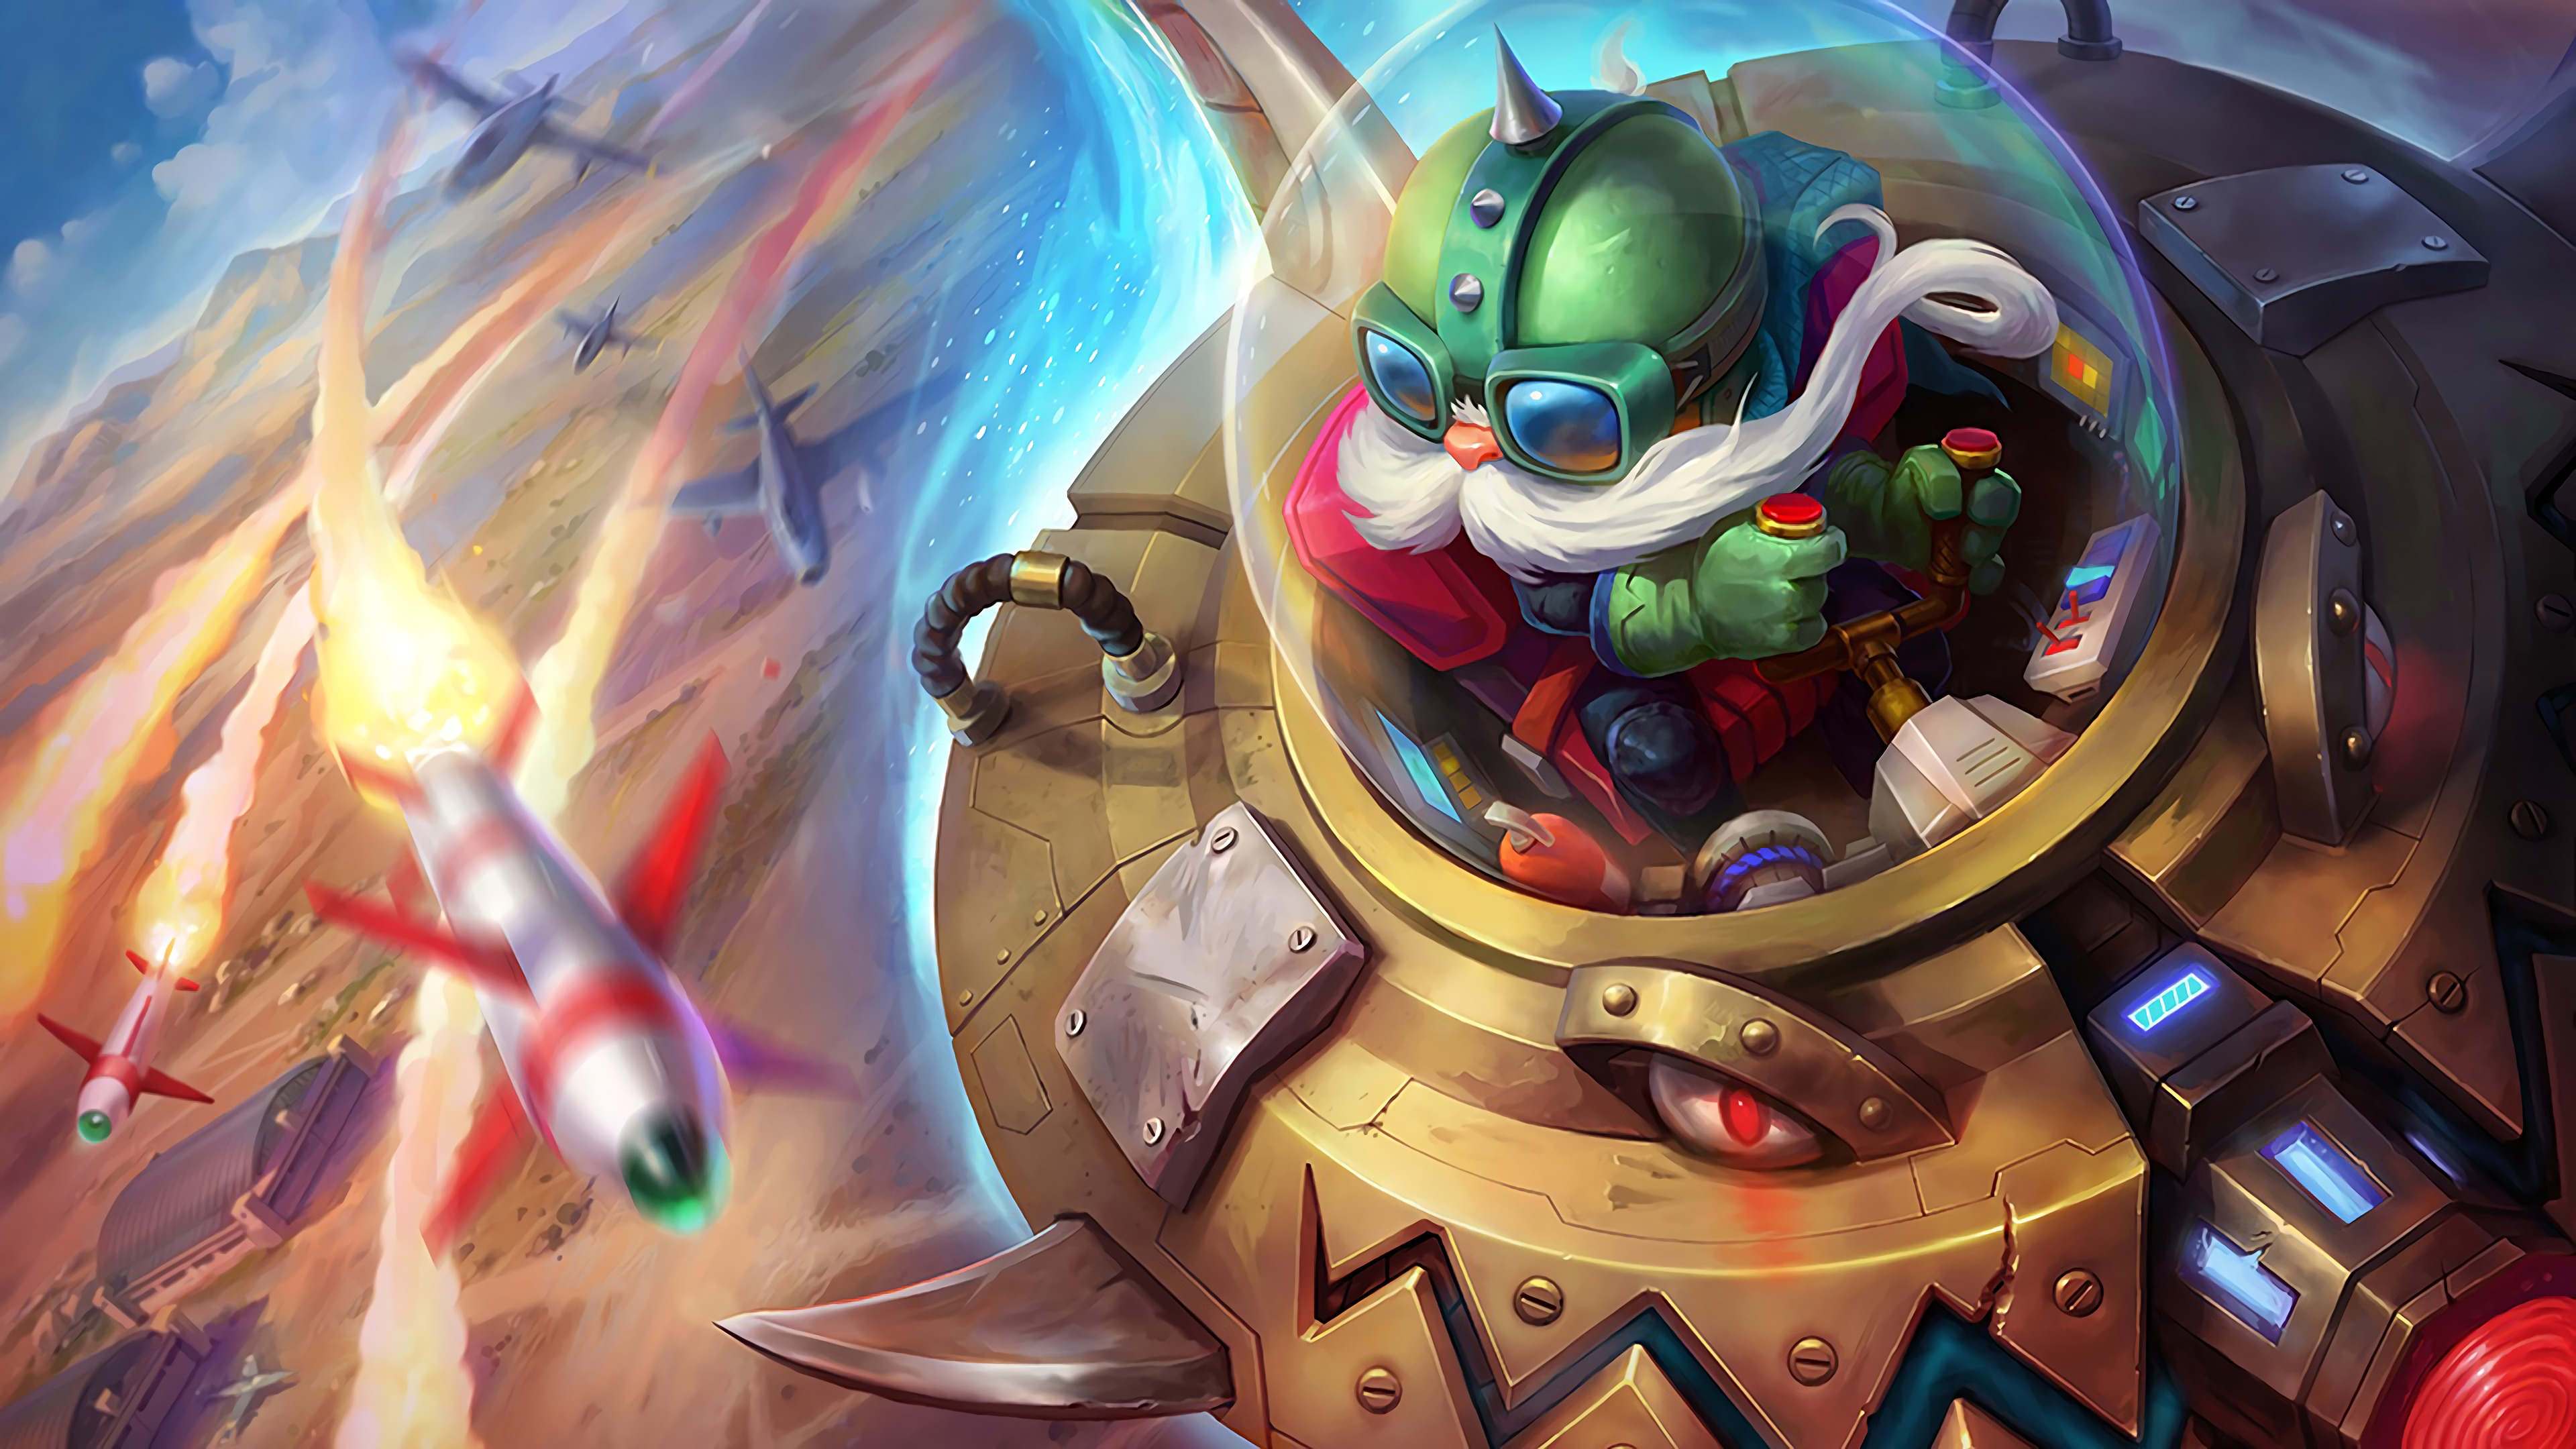 UFO Corki wallpaper